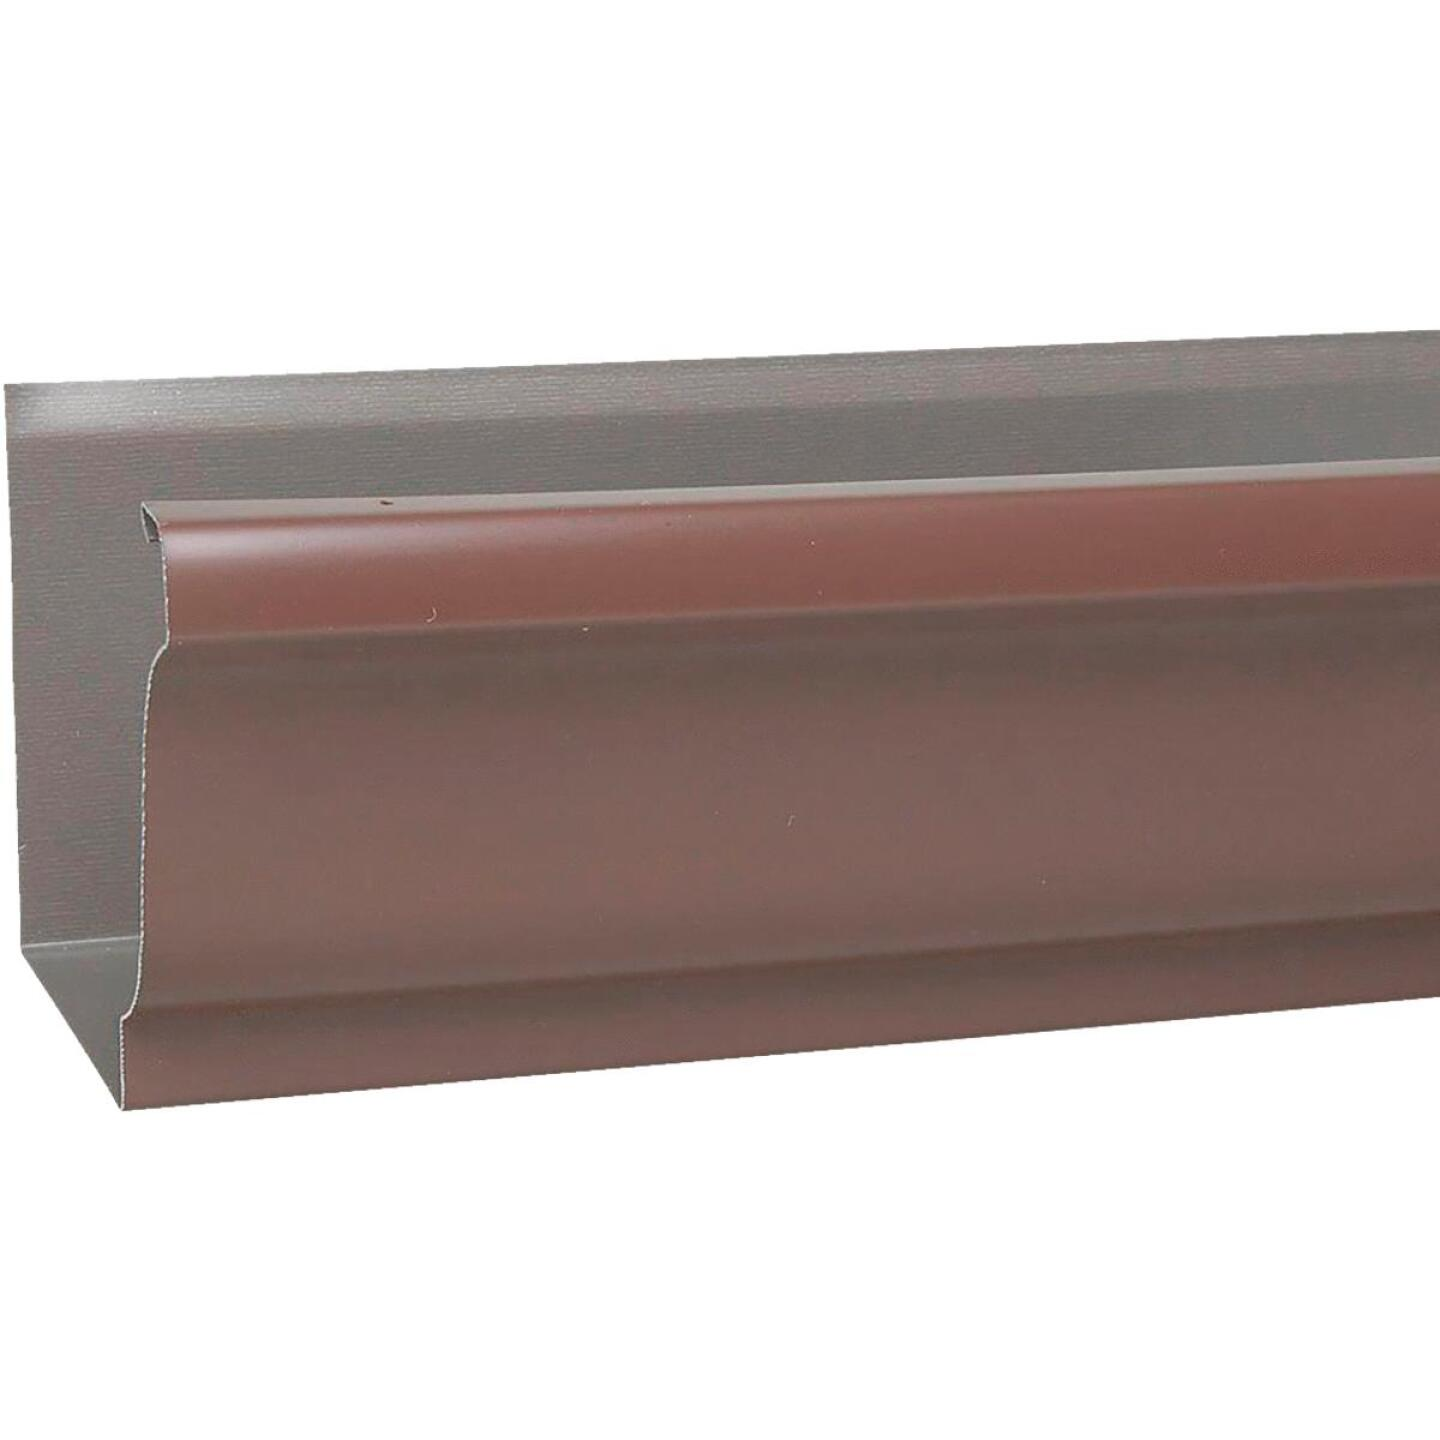 Spectra Metals 5 In. x 10 Ft. K-Style Brown High Tensile Aluminum Gutter Image 1